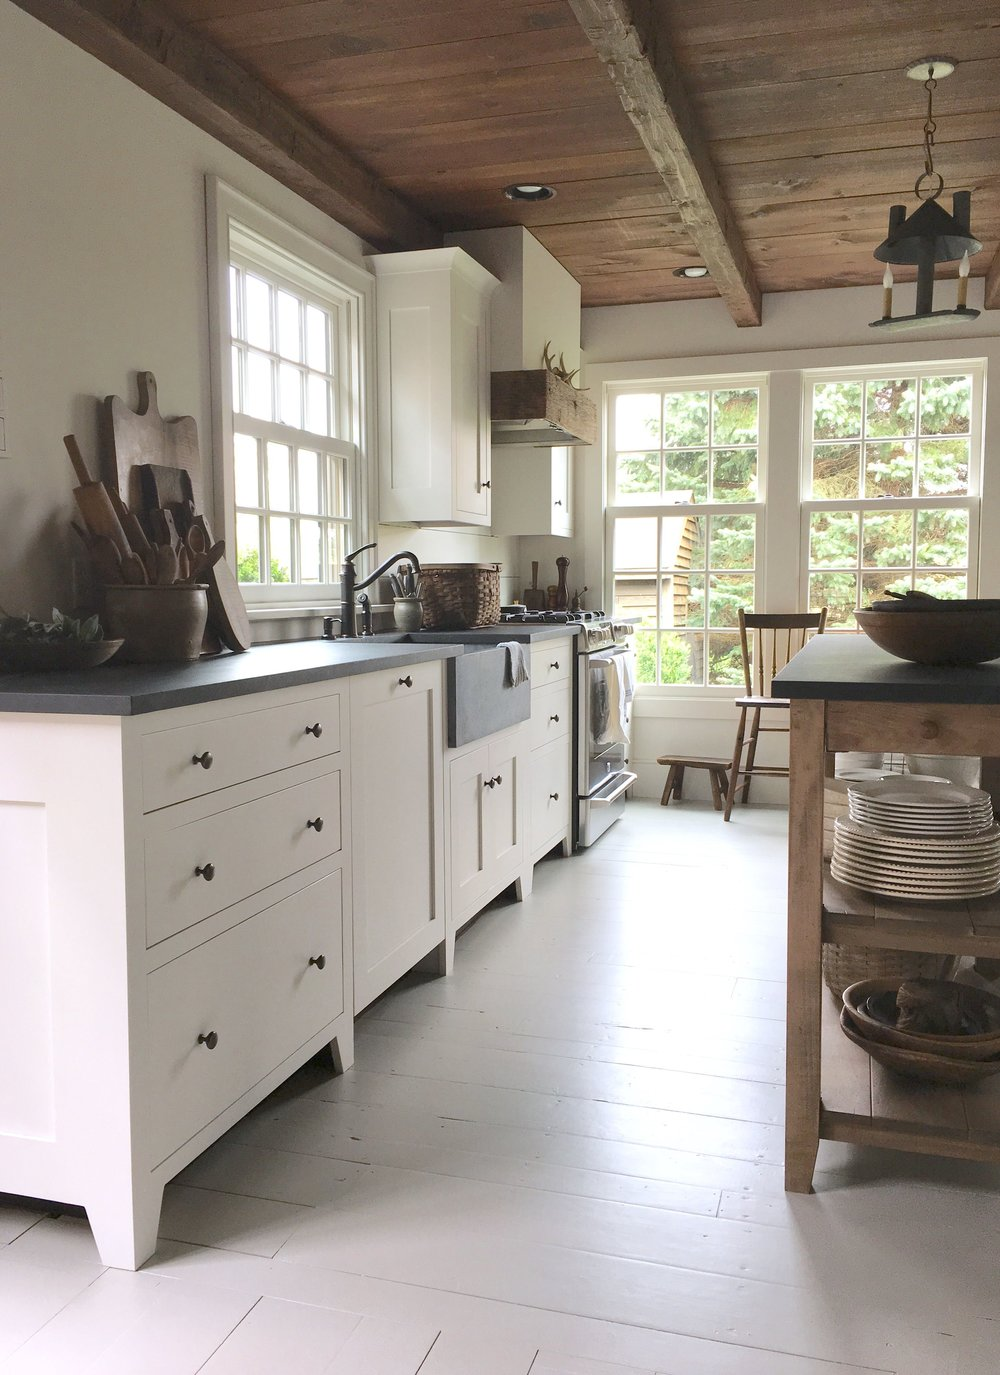 Gorgeous farmhouse and shaker style by the ever so talented Phoebe Troyer. I love the windows, wood ceiling. breadboards, apron sink, black counters, white cabinets and those wood beams on the ceiling.